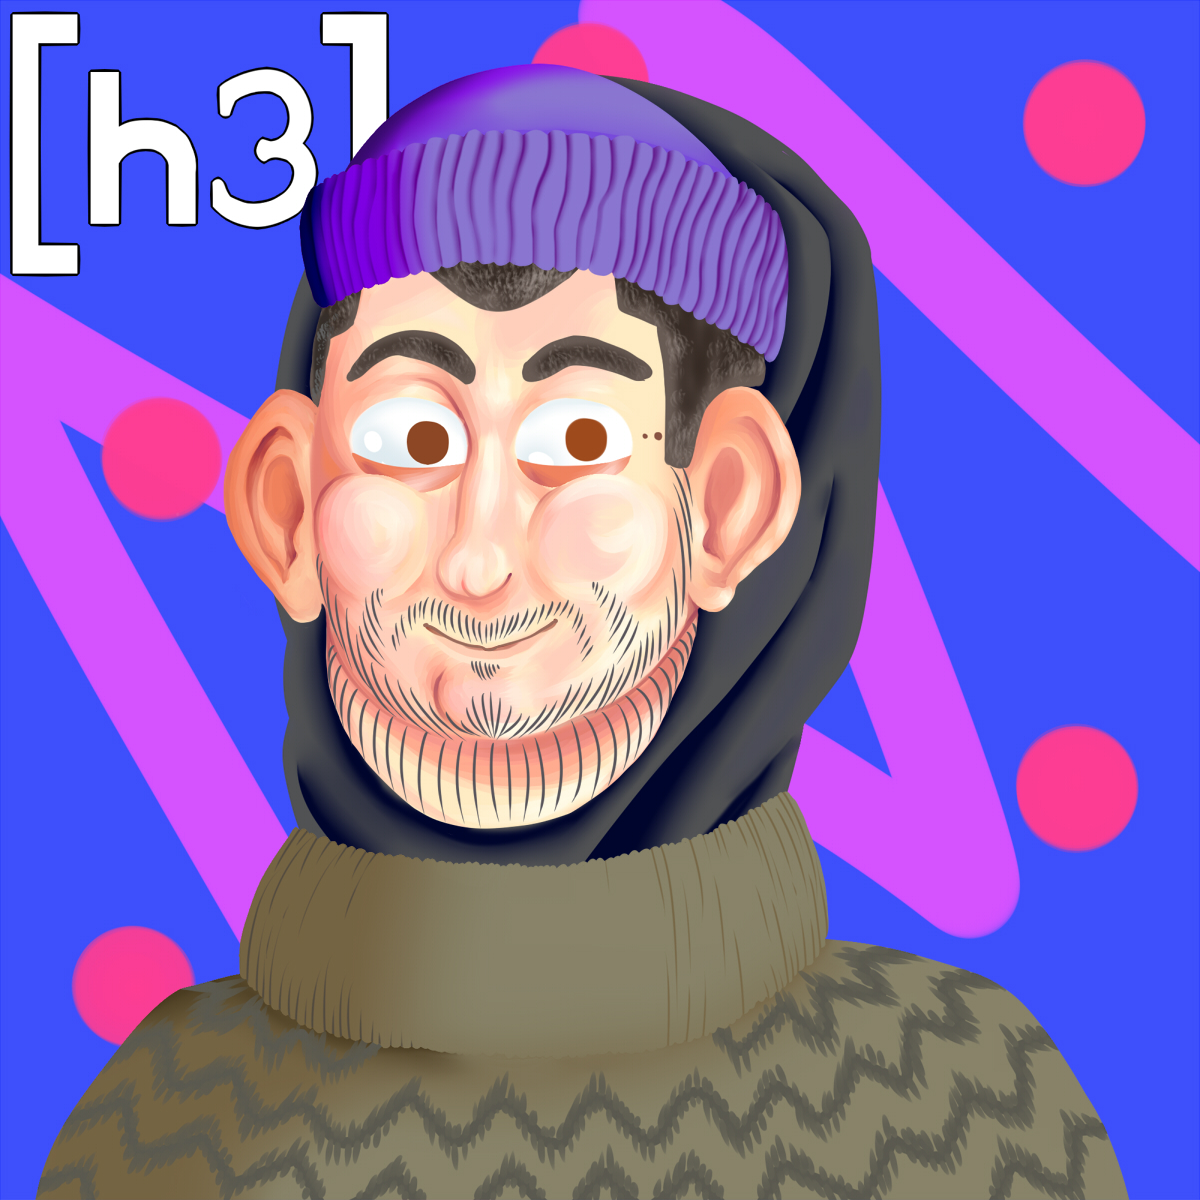 Ethan from h3h3 Productions